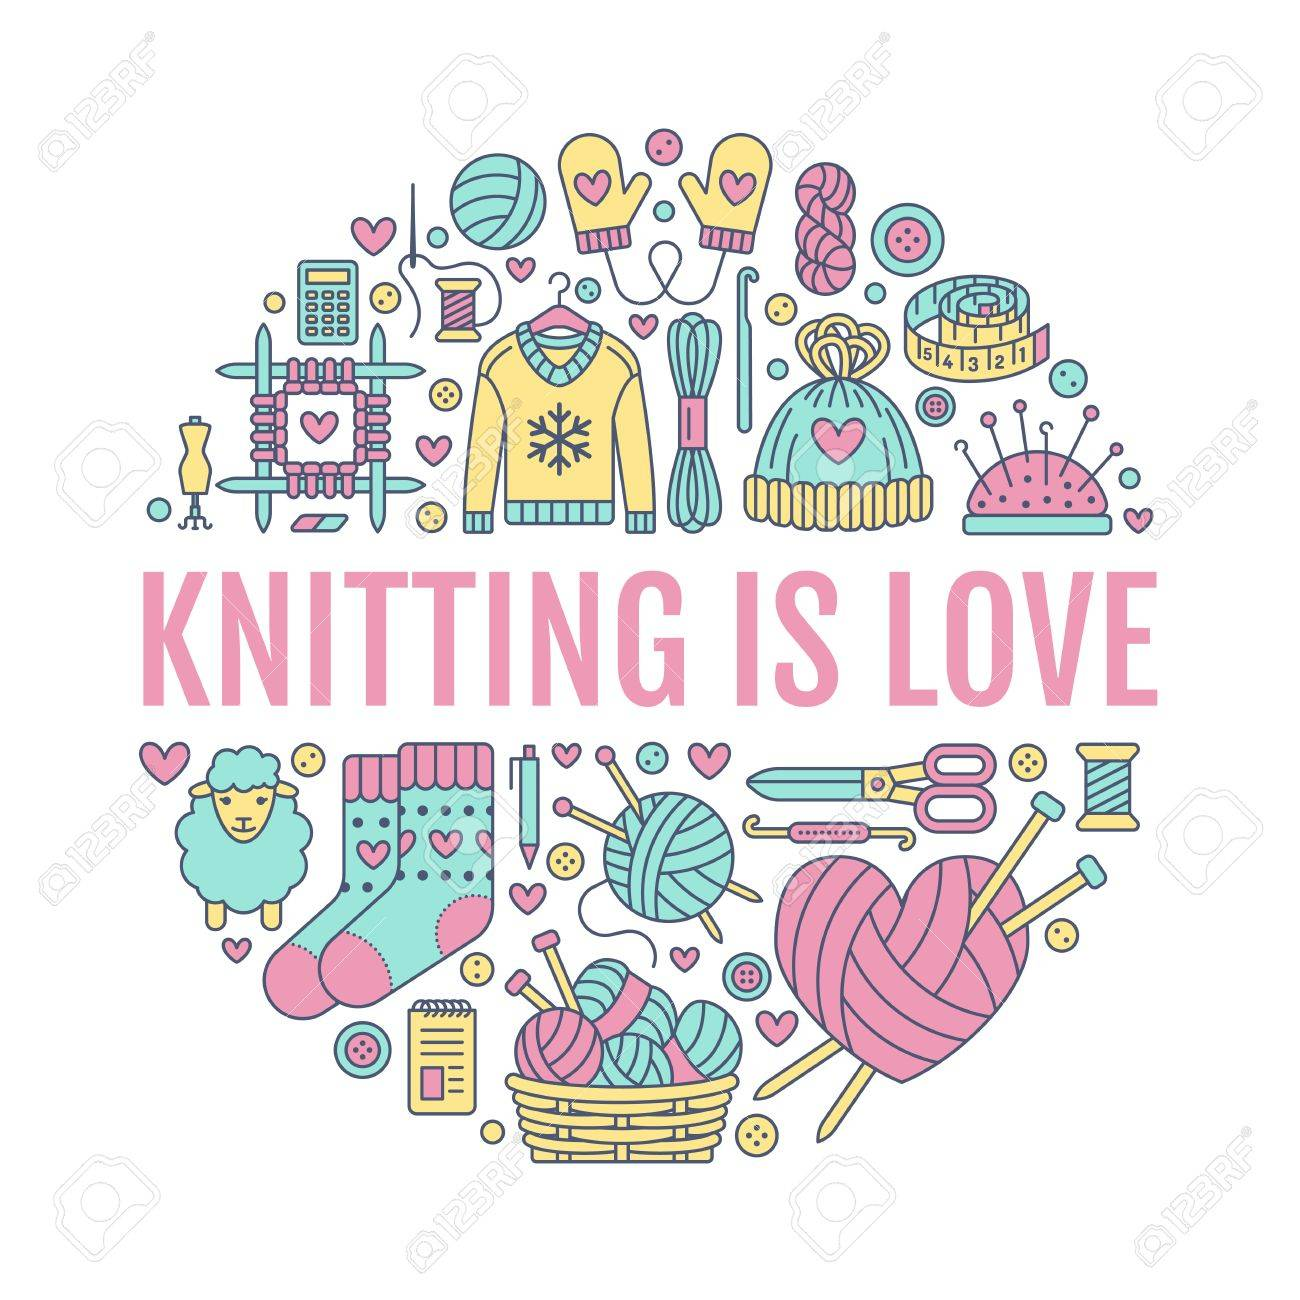 Knitting Crochet Hand Made Banner Illustration Vector Line Royalty Free Cliparts Vectors And Stock Illustration Image 70973395